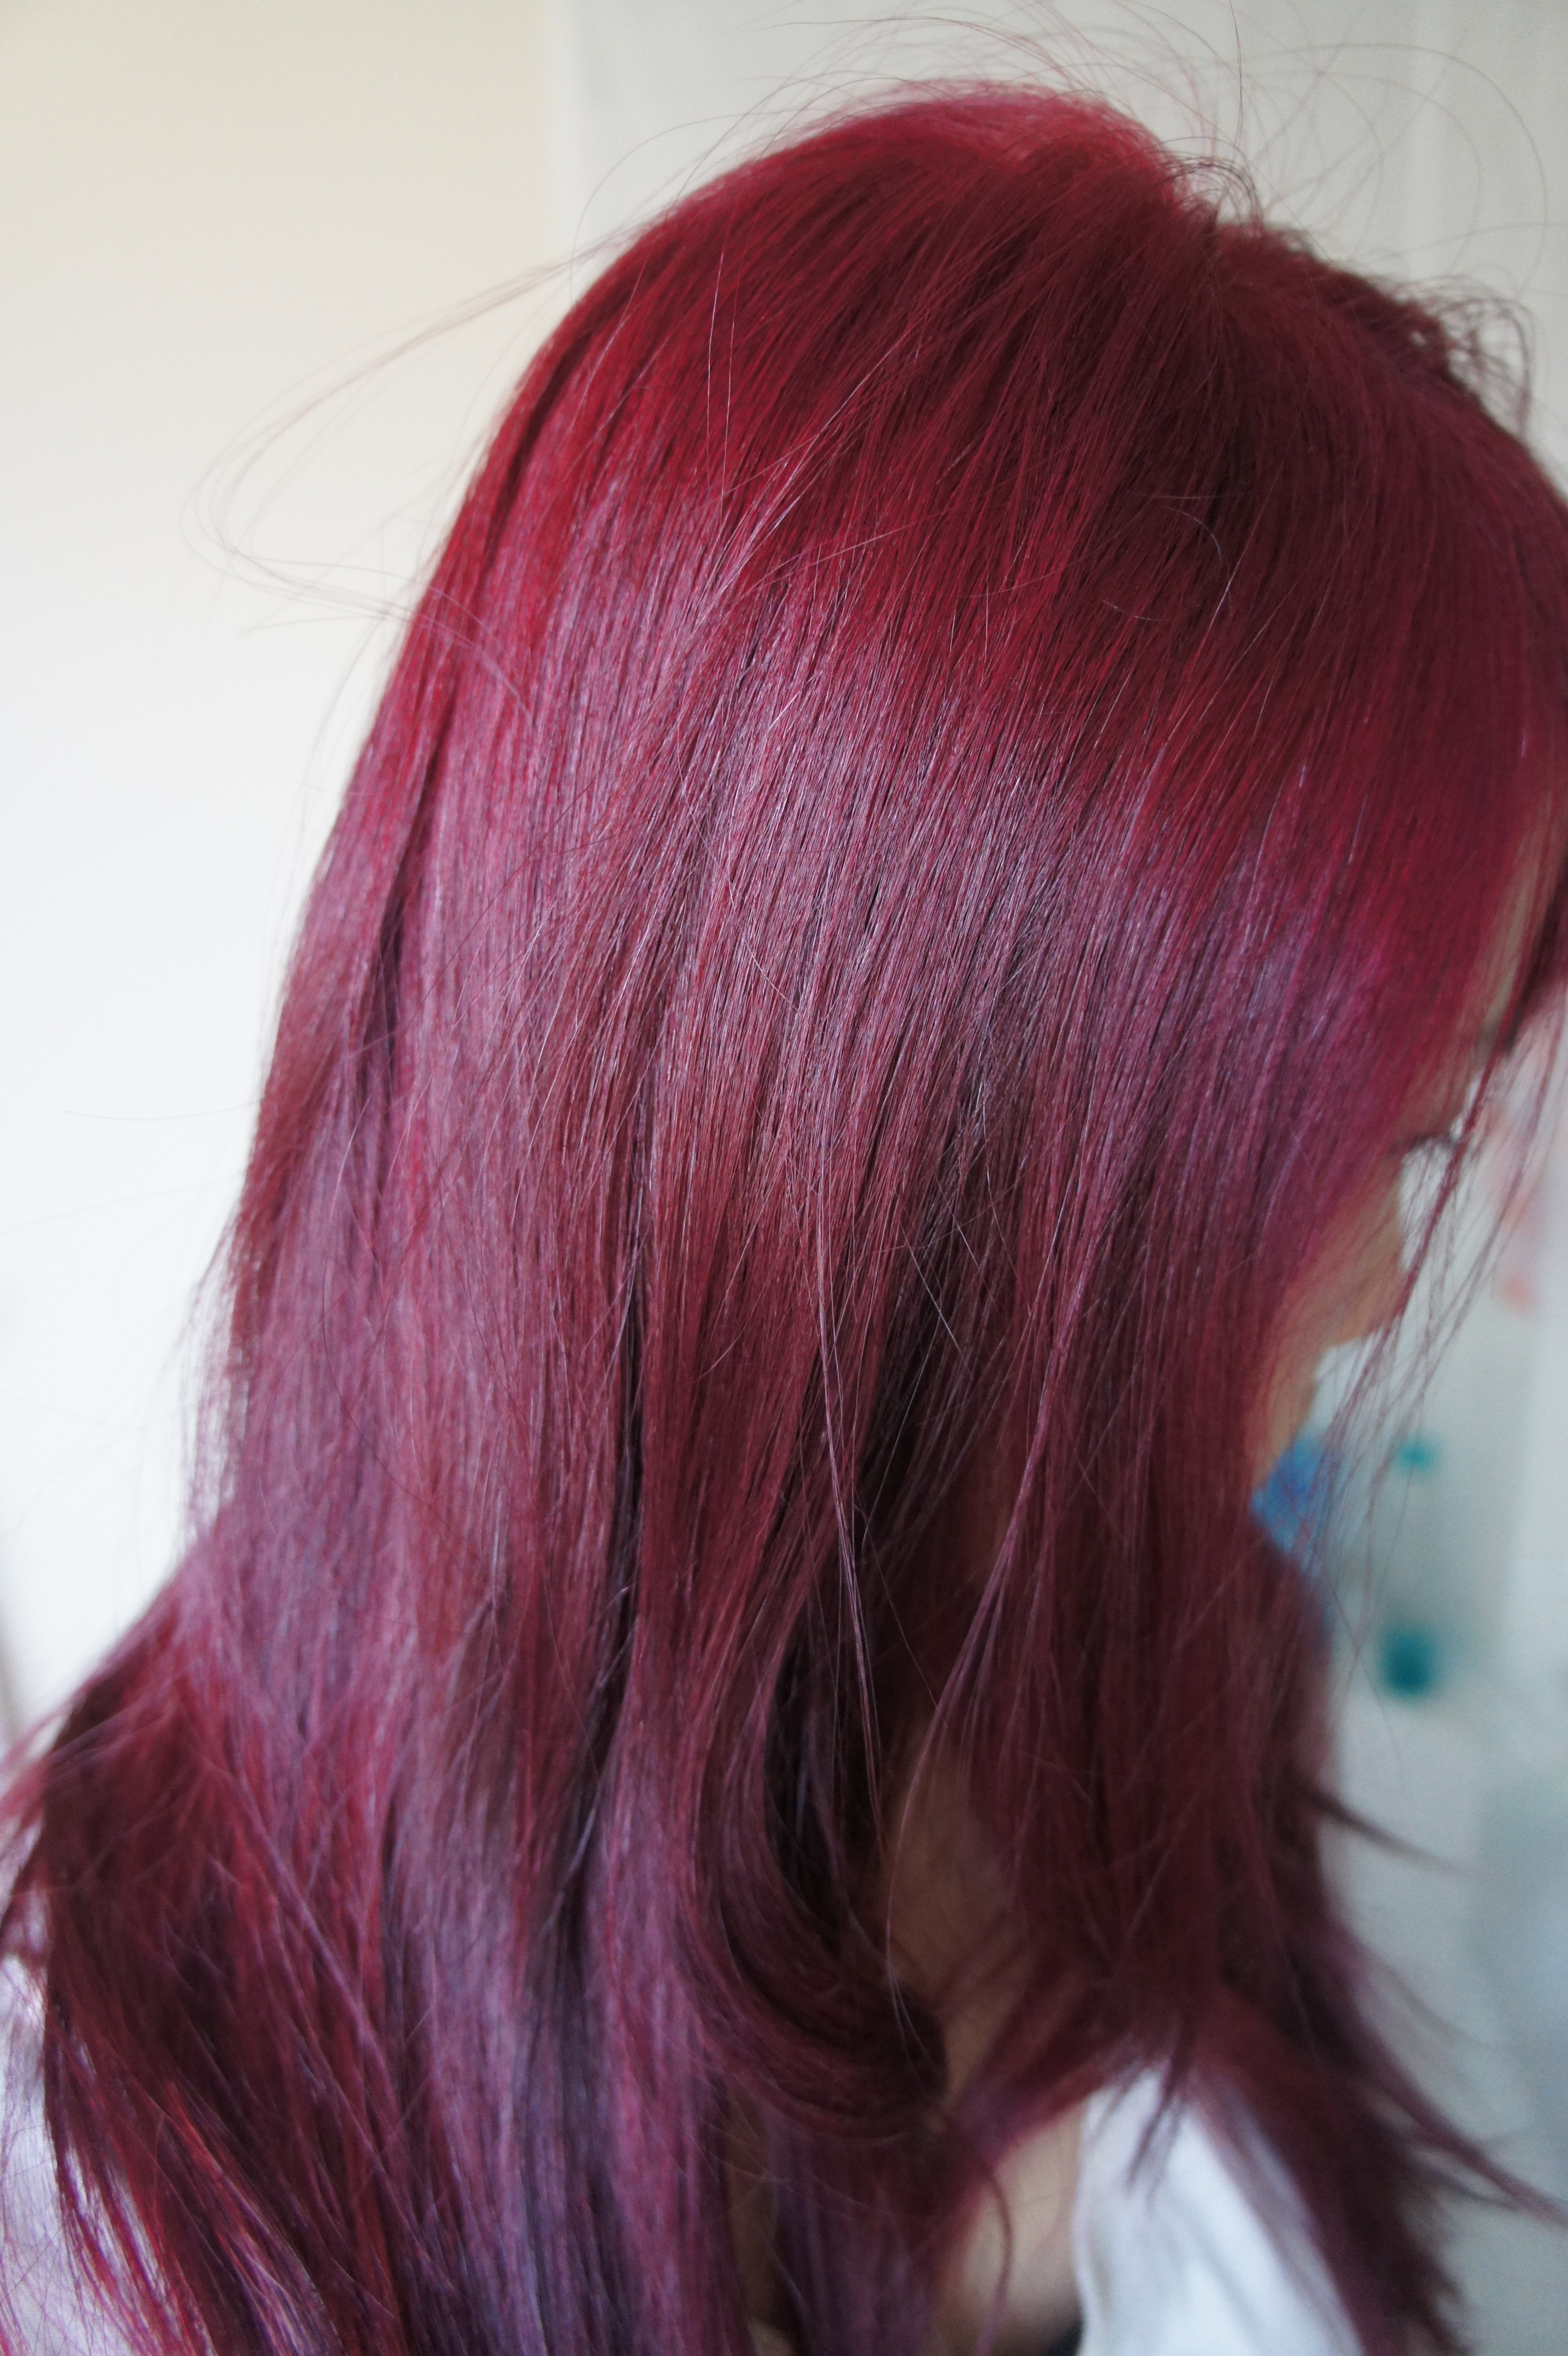 DIY Dyeing Hair  Seeing Red At Home DIY Hair Colouring